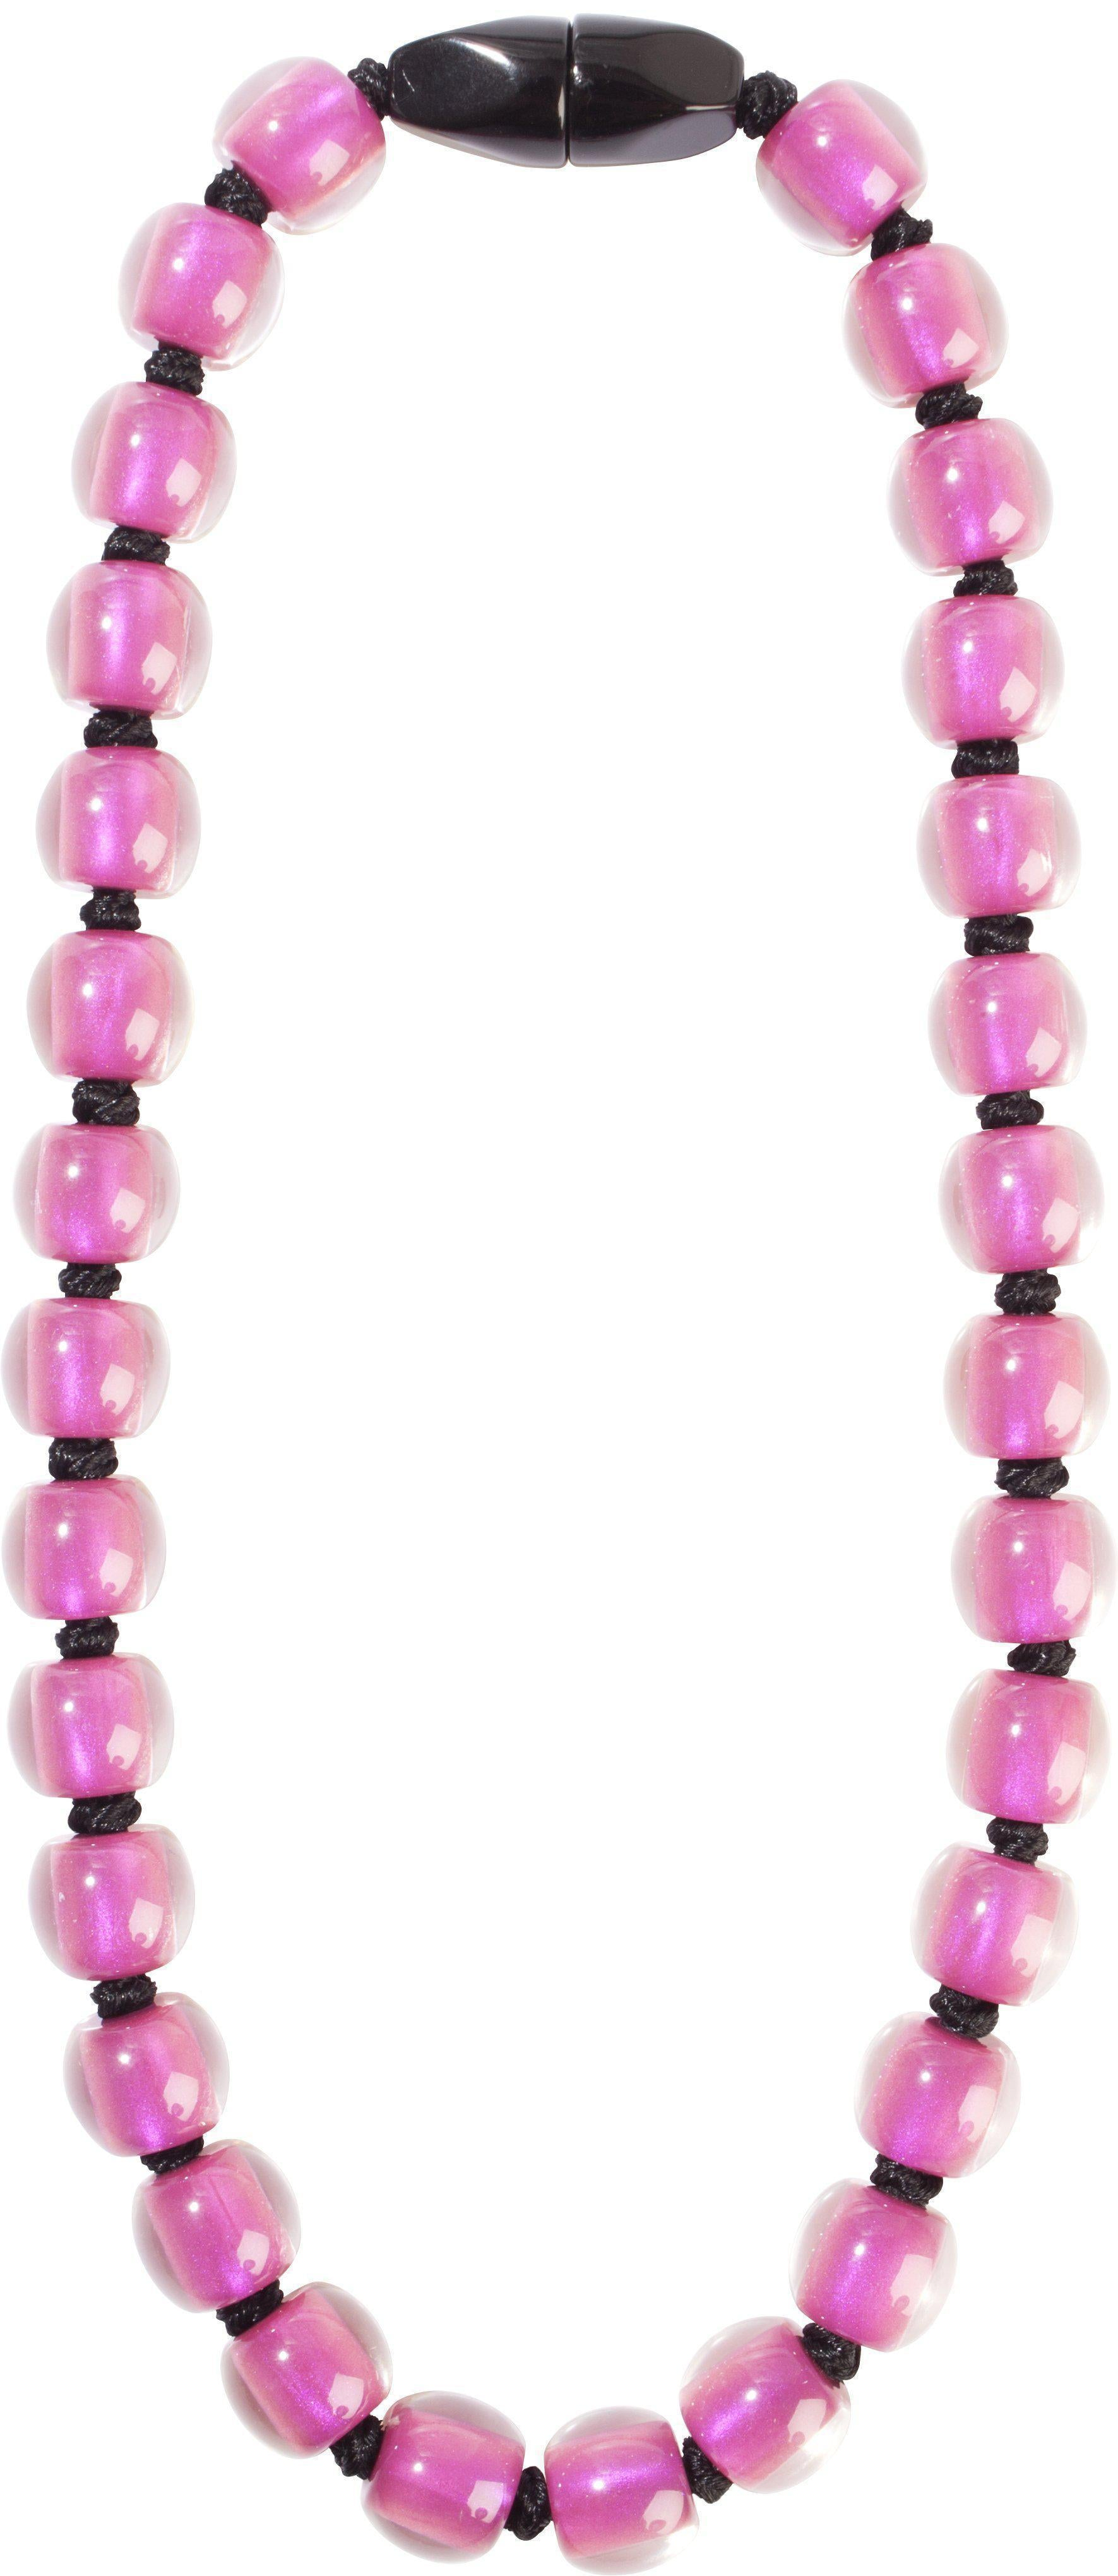 Zsiska Colourful Beads Plain Necklace-Jewellery-Zsiska-30 beads-Pink-Temples and Markets